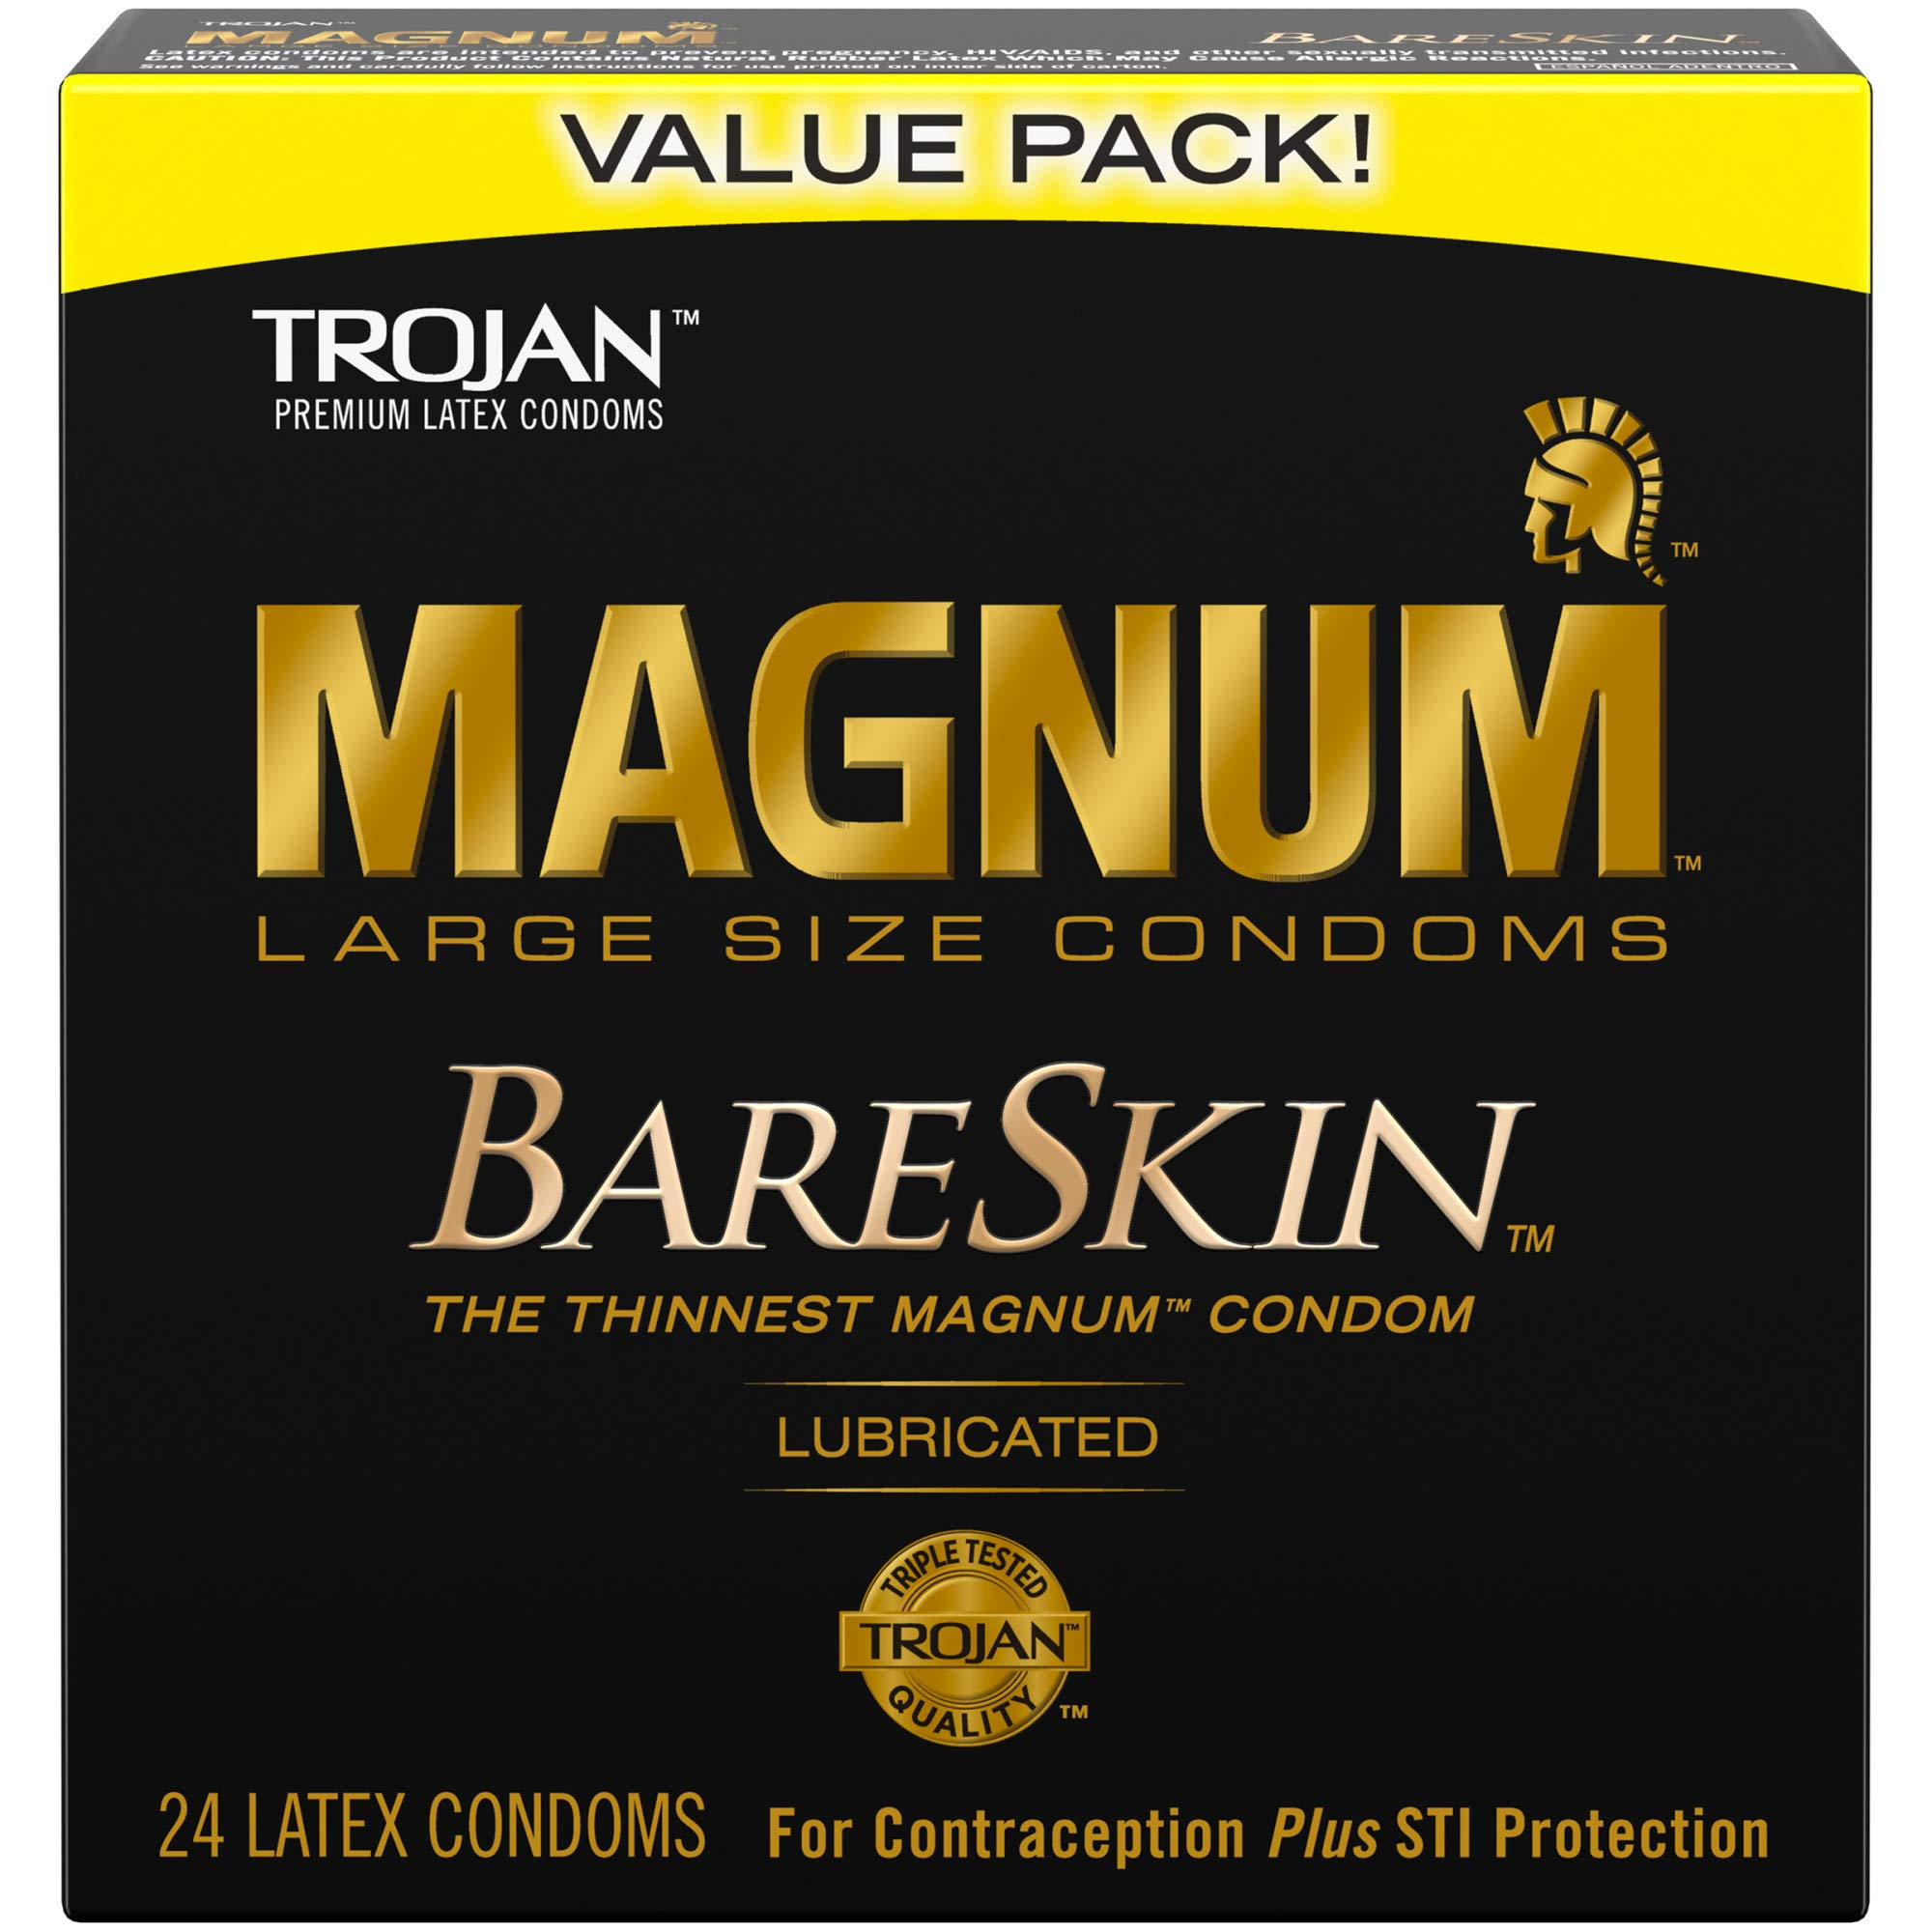 TROJAN MAGNUM BARESKIN Large Size Condoms, 24 Count by TROJAN